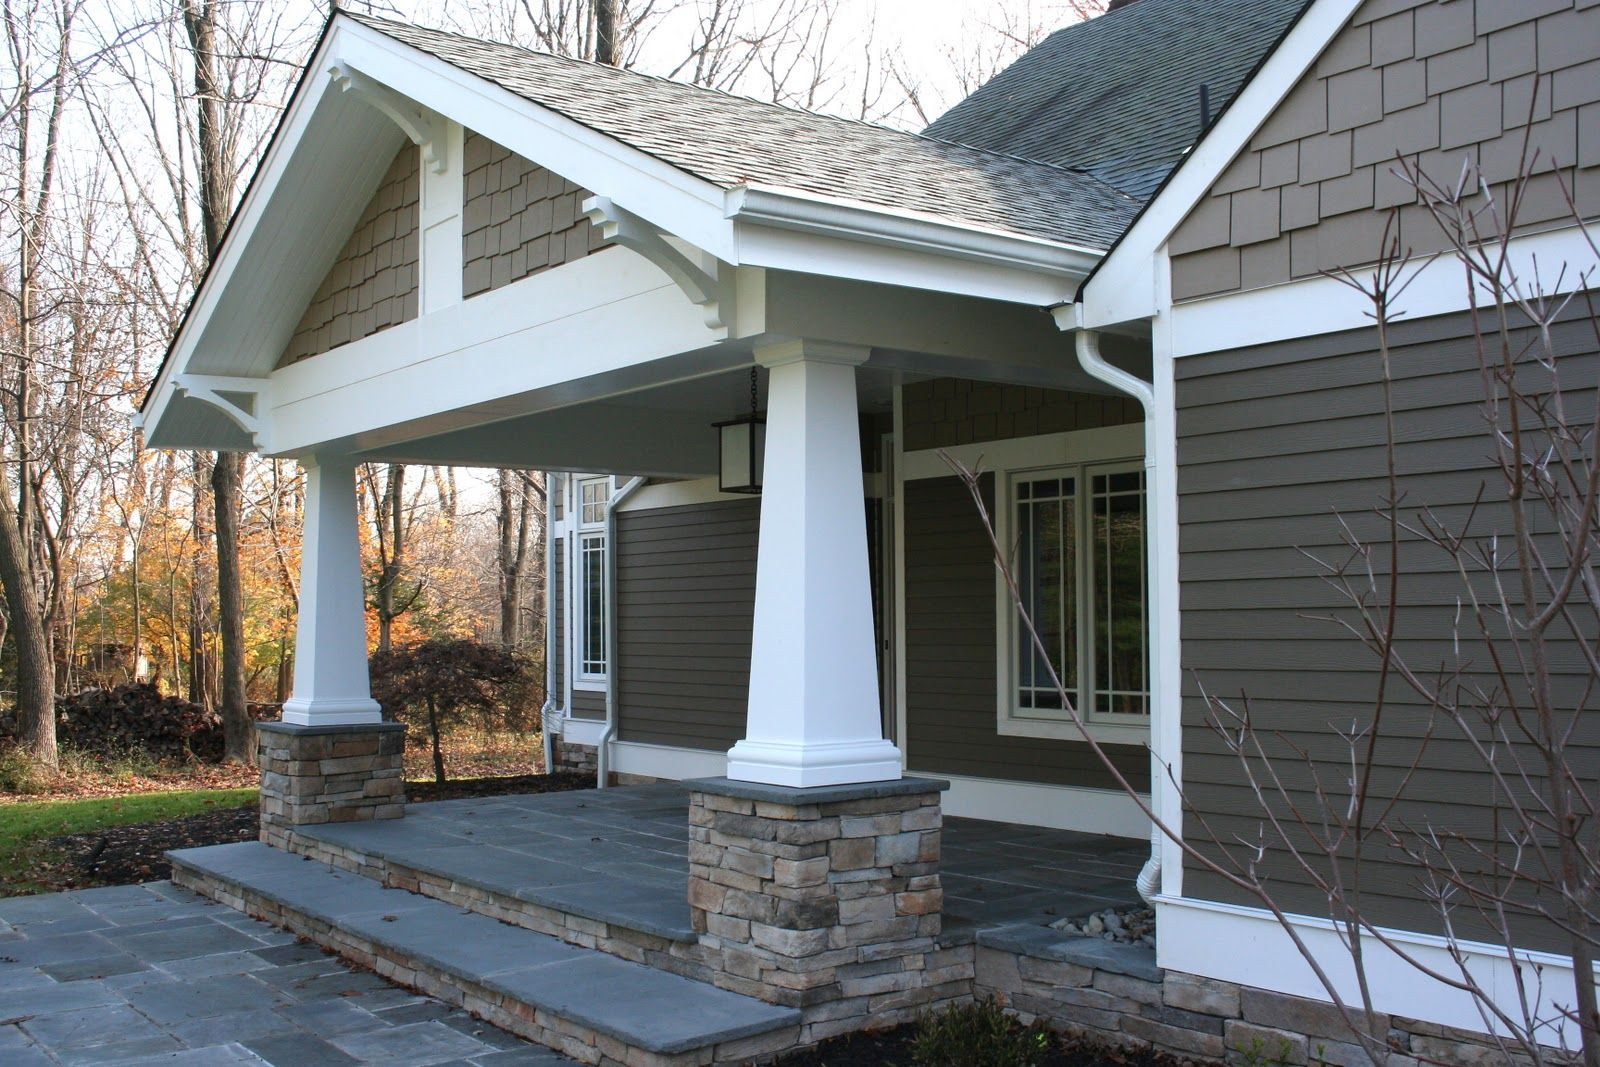 The Porch Is The Most Dramatic With Tapered Craftsman Columns Stone Piers An